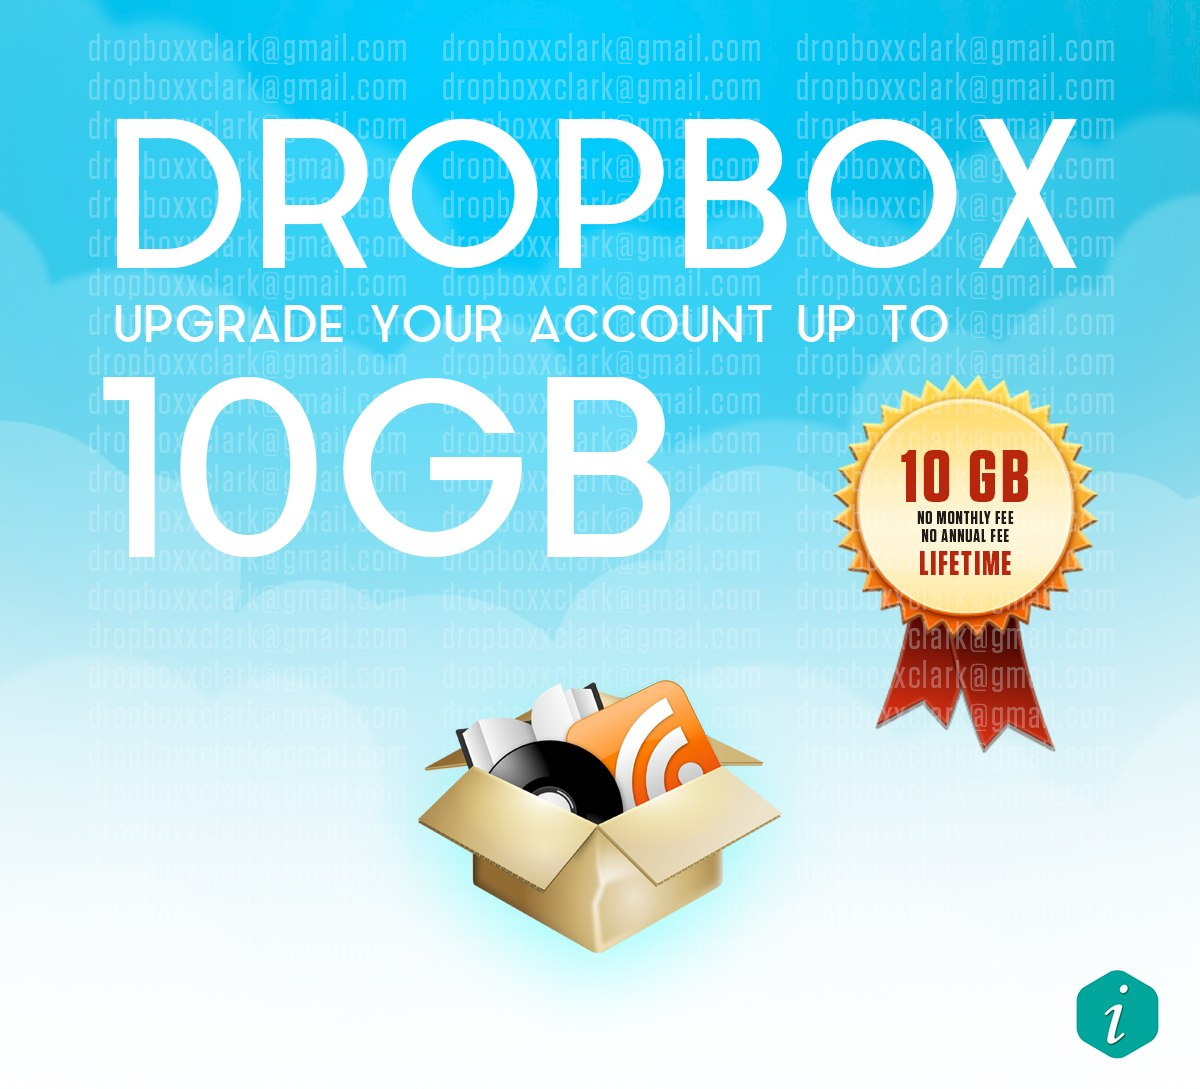 upgrade your Dropbox Account with 10GB lifetime space